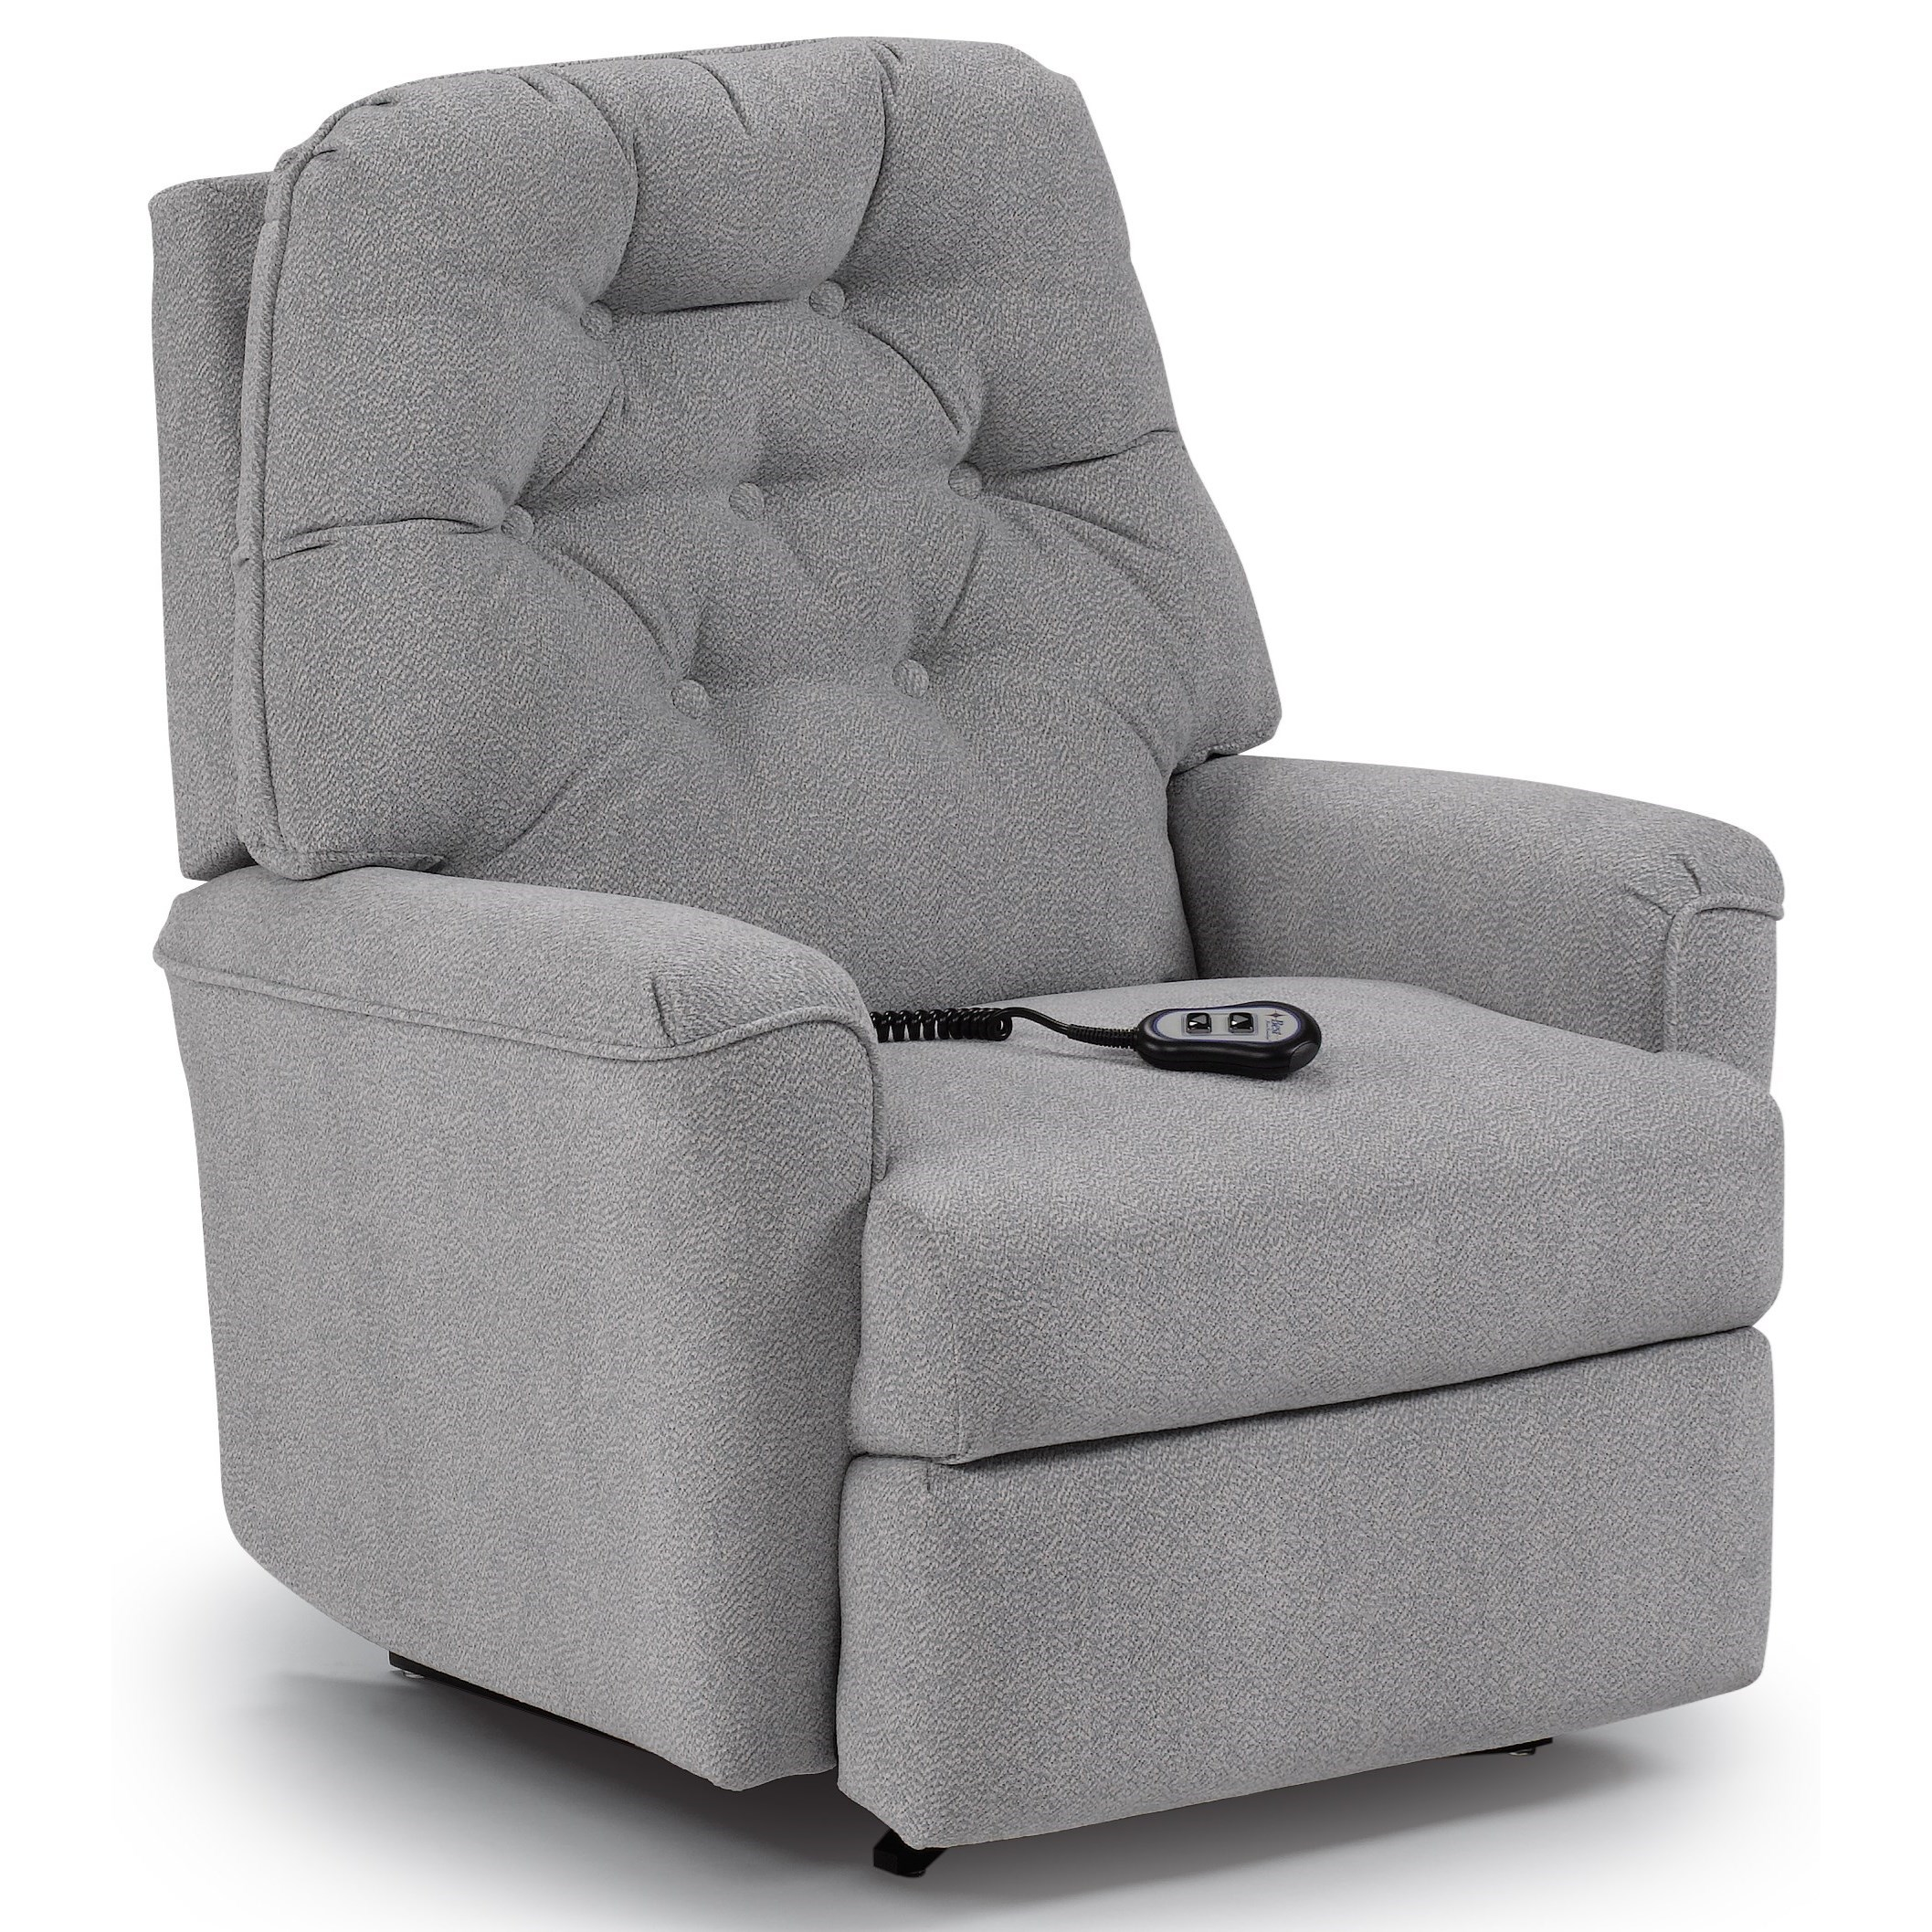 Best Home Furnishings Recliners - Medium Cara Power Space Saver Recliner - Item Number: 1AP44